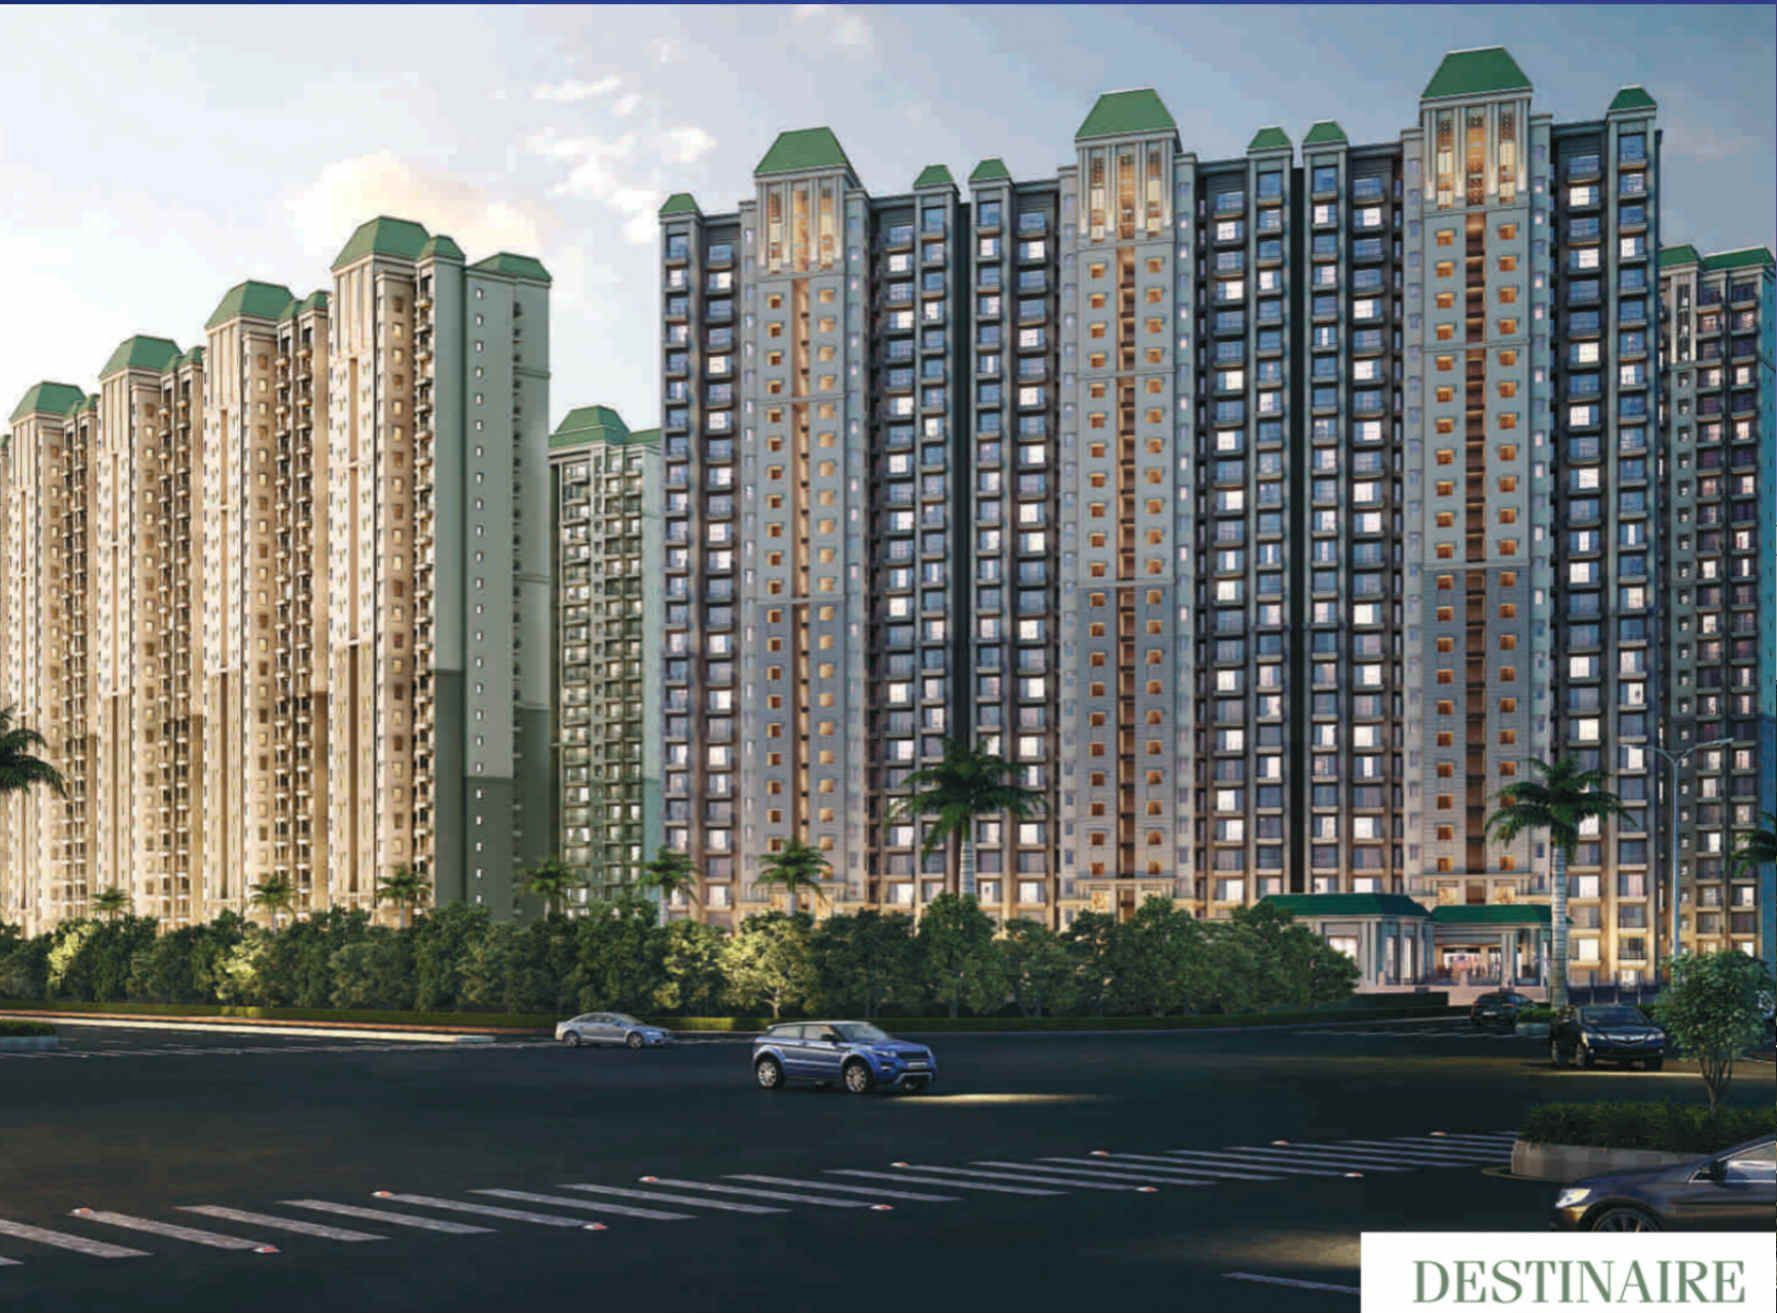 Ats Destinaire Noida Extension Apartments For Sale Greater Noida Residential